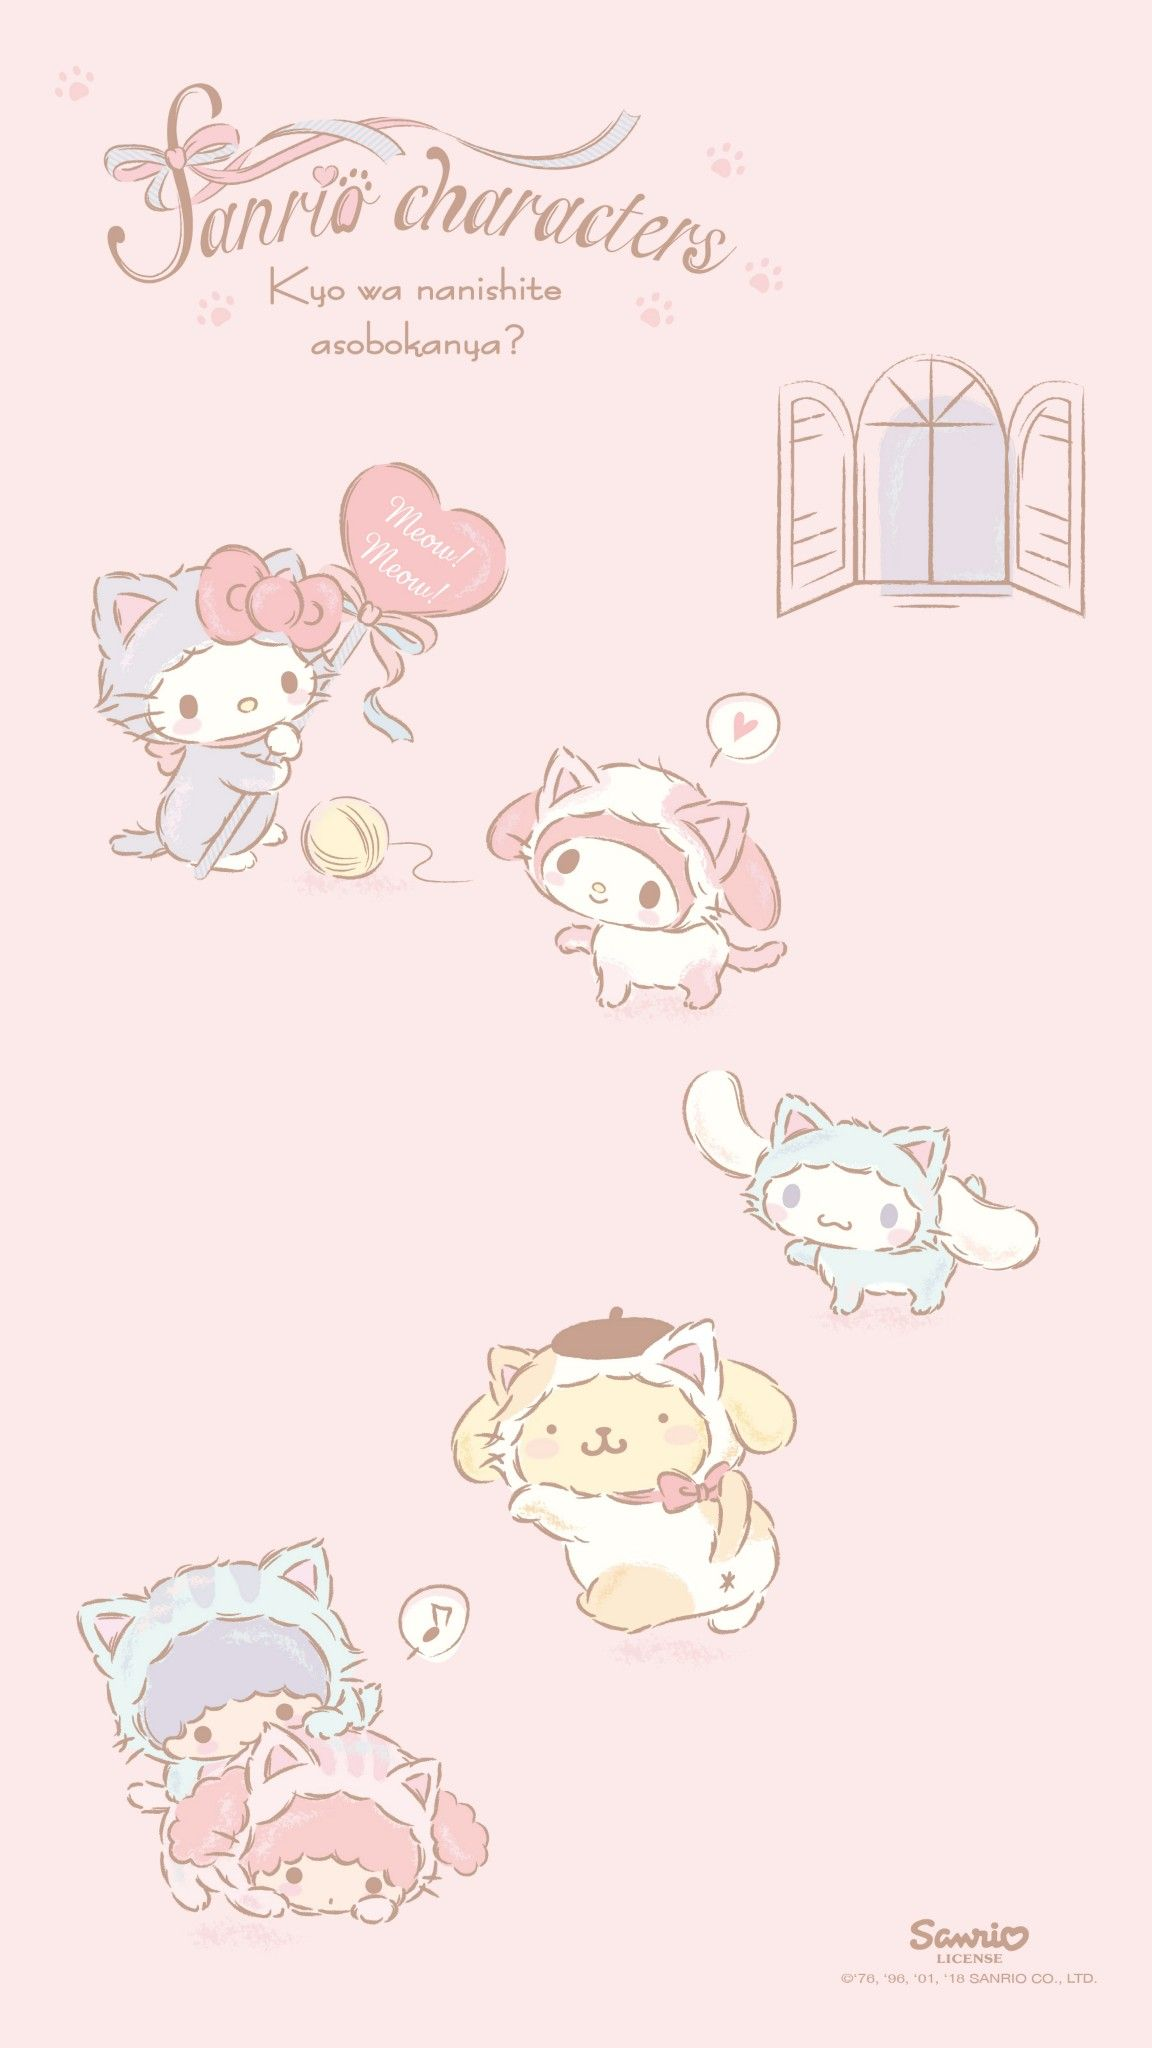 Pin By 怡君 陳 On Sanrio Wallpaper In 2019 Sanrio